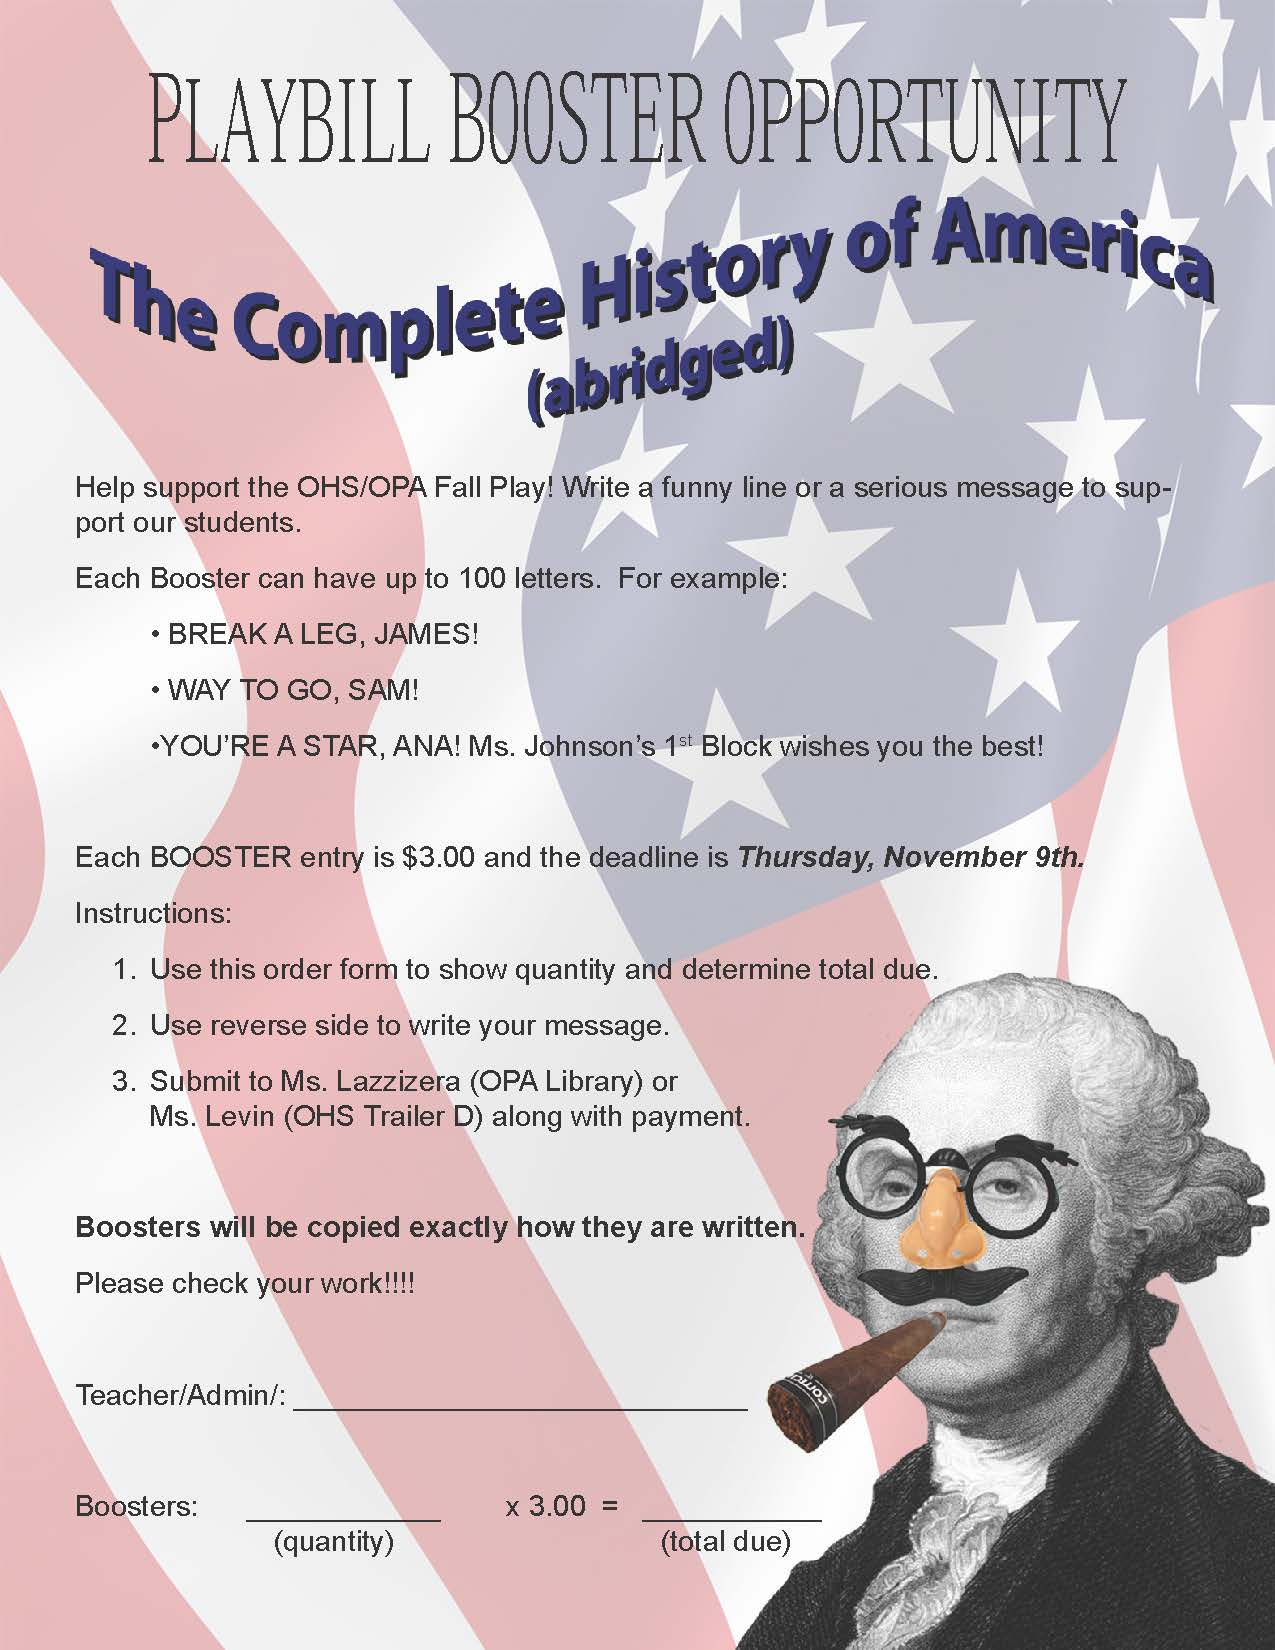 The Complete History of America Booster Ad